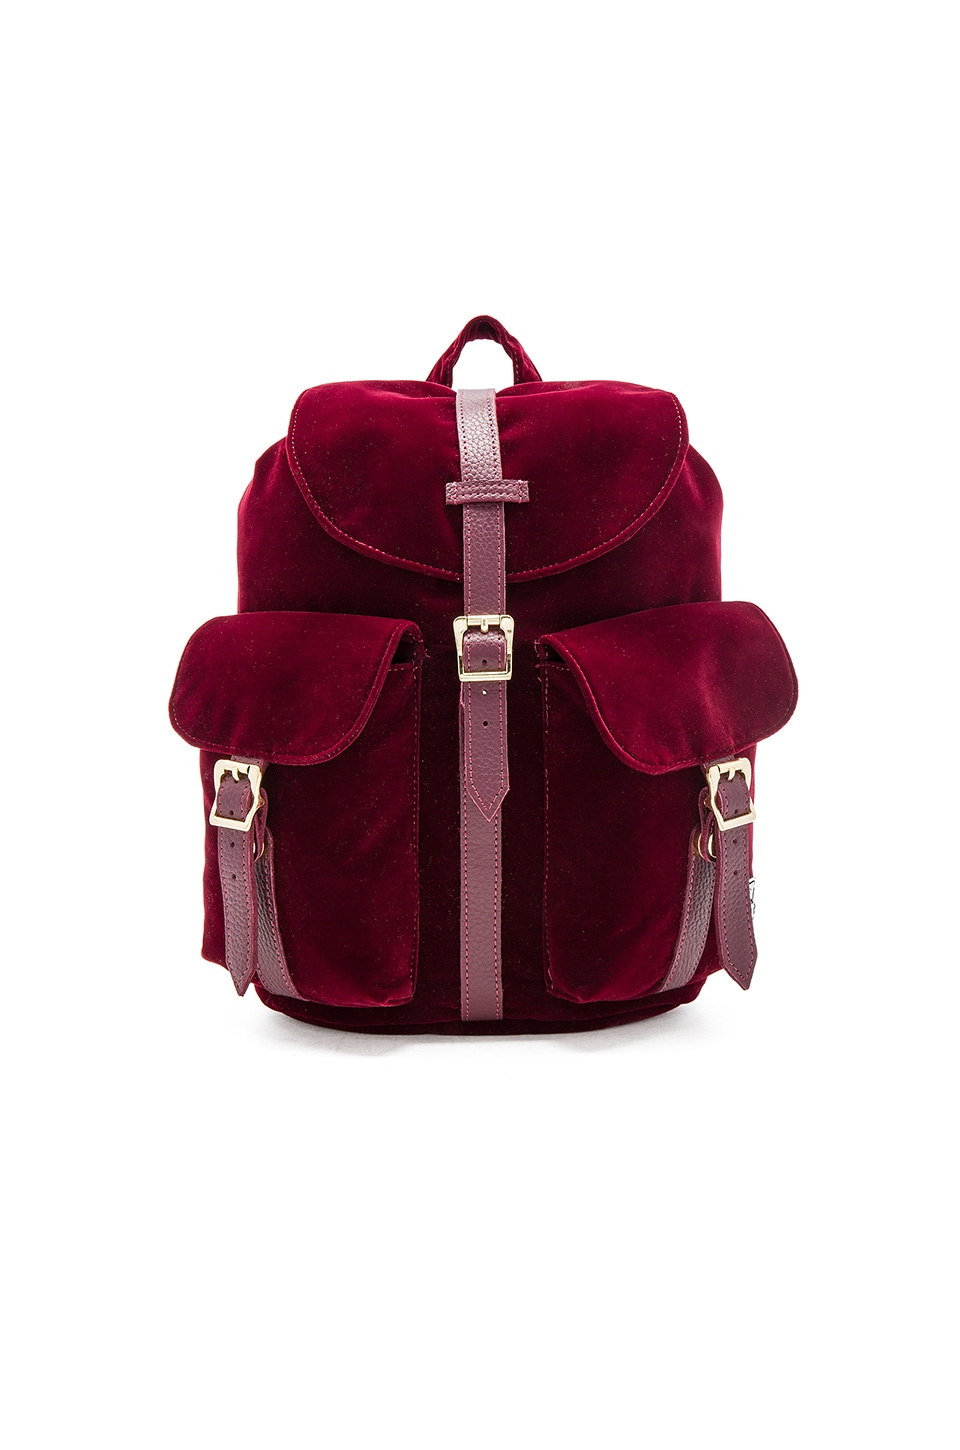 Herschel Supply Co. Velvet Dawson in Windsor Wine